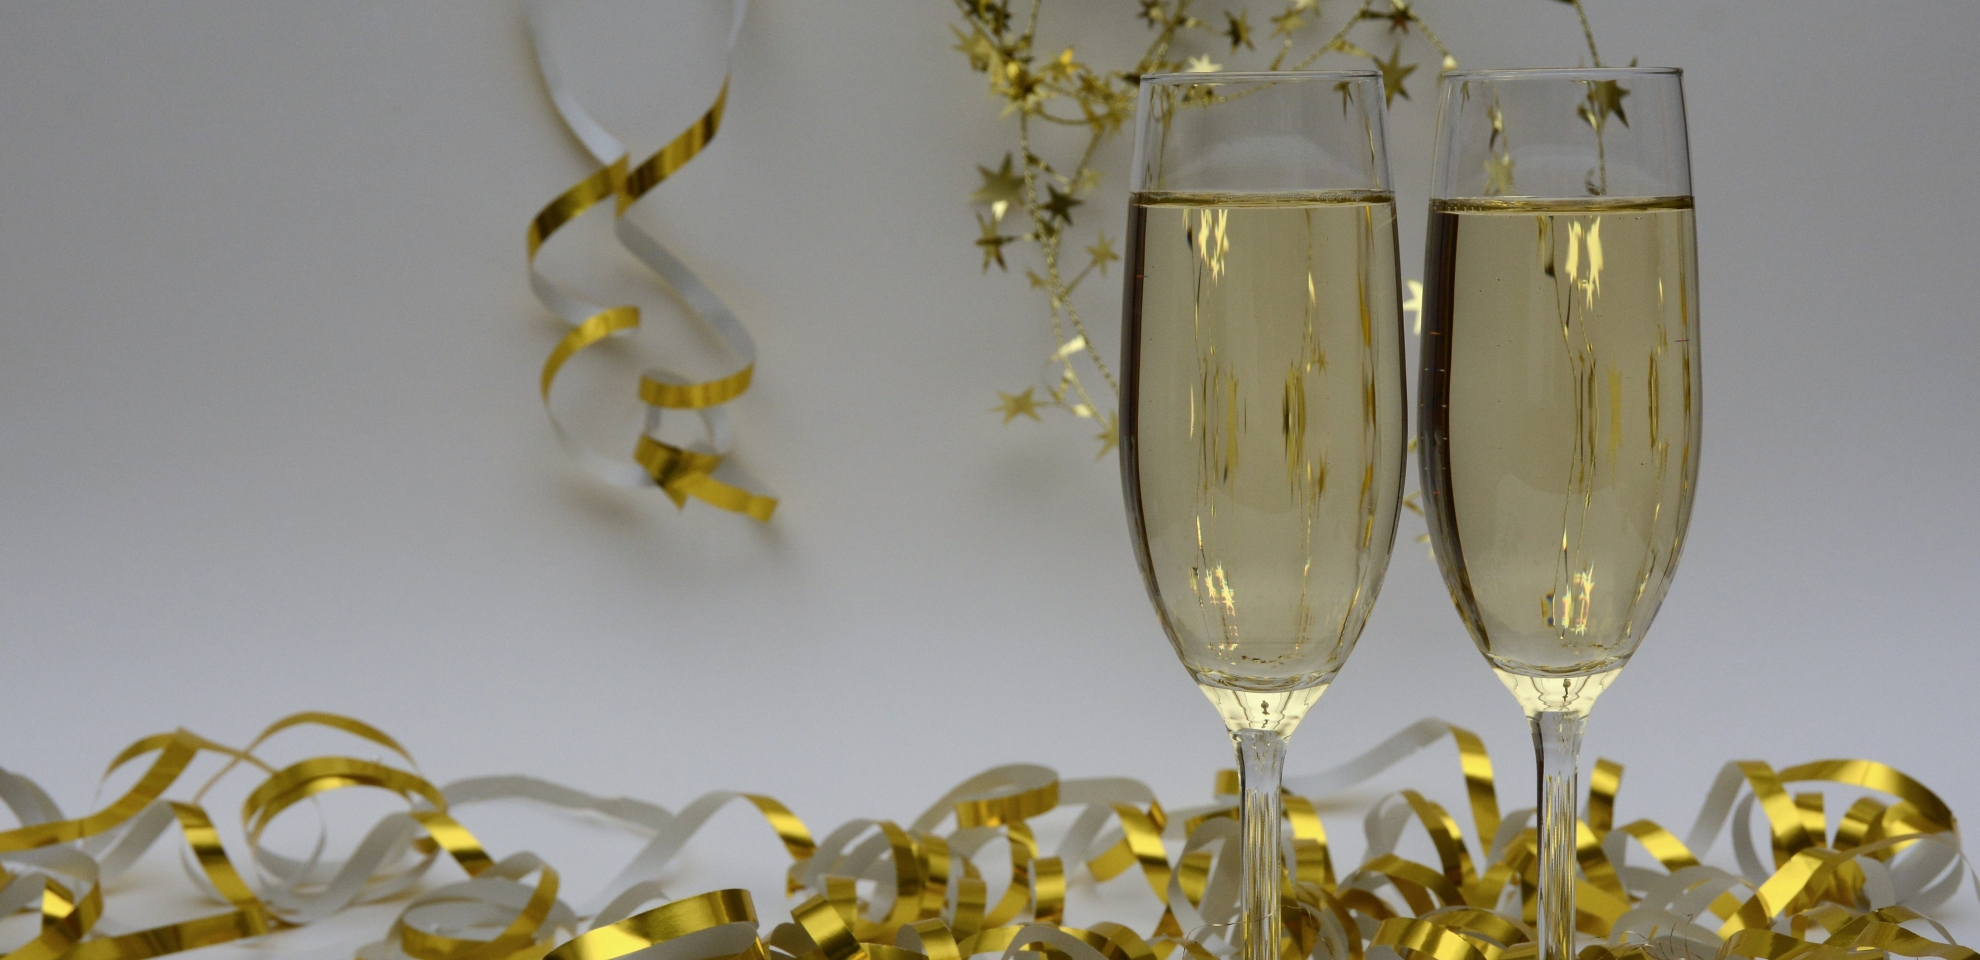 5 Things NOT to do at your office New Year Party